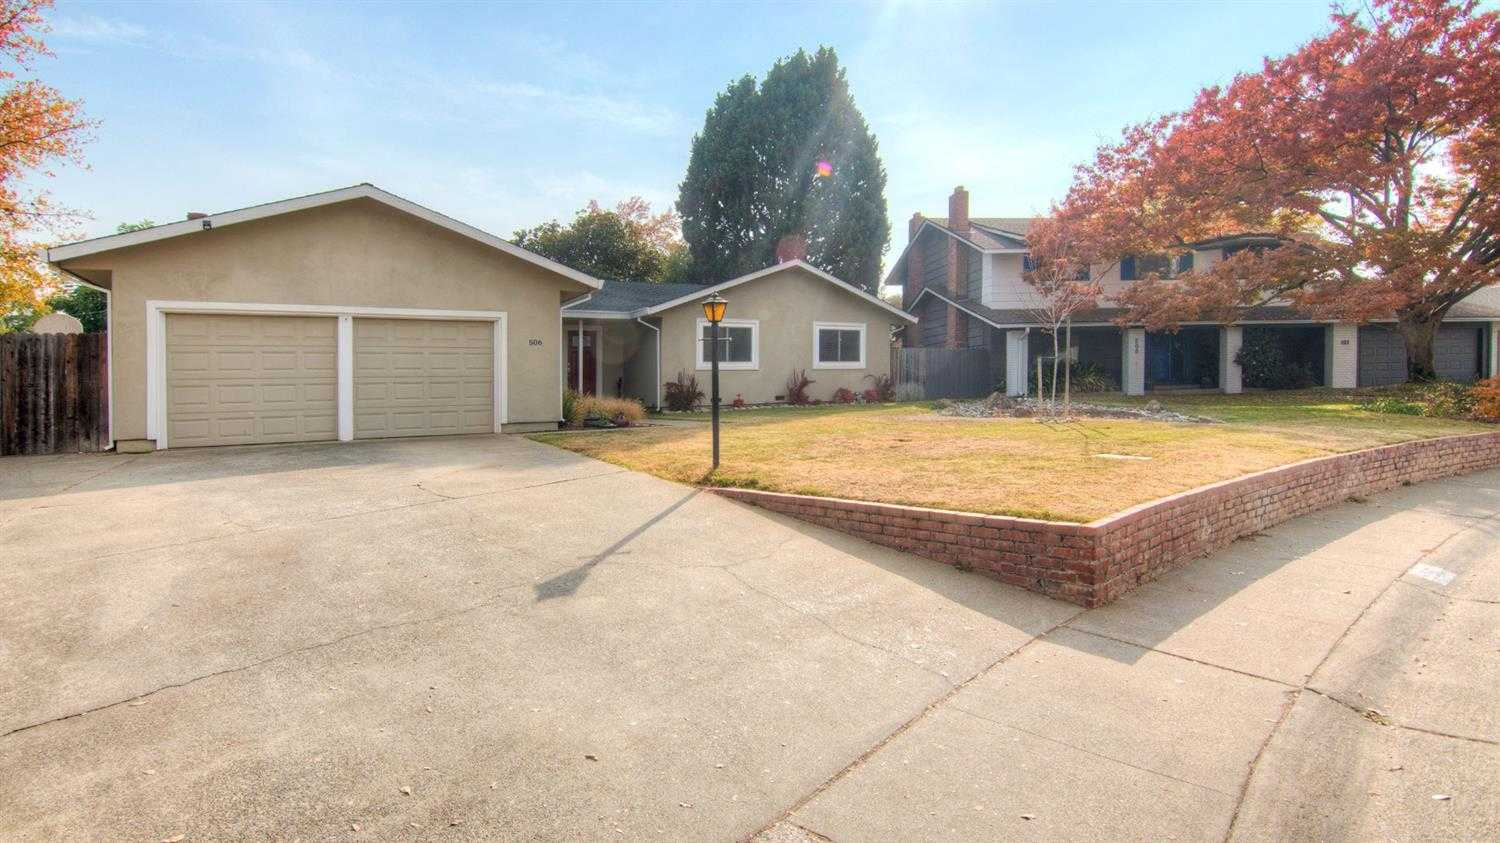 506 Vine Way Roseville, CA 95678